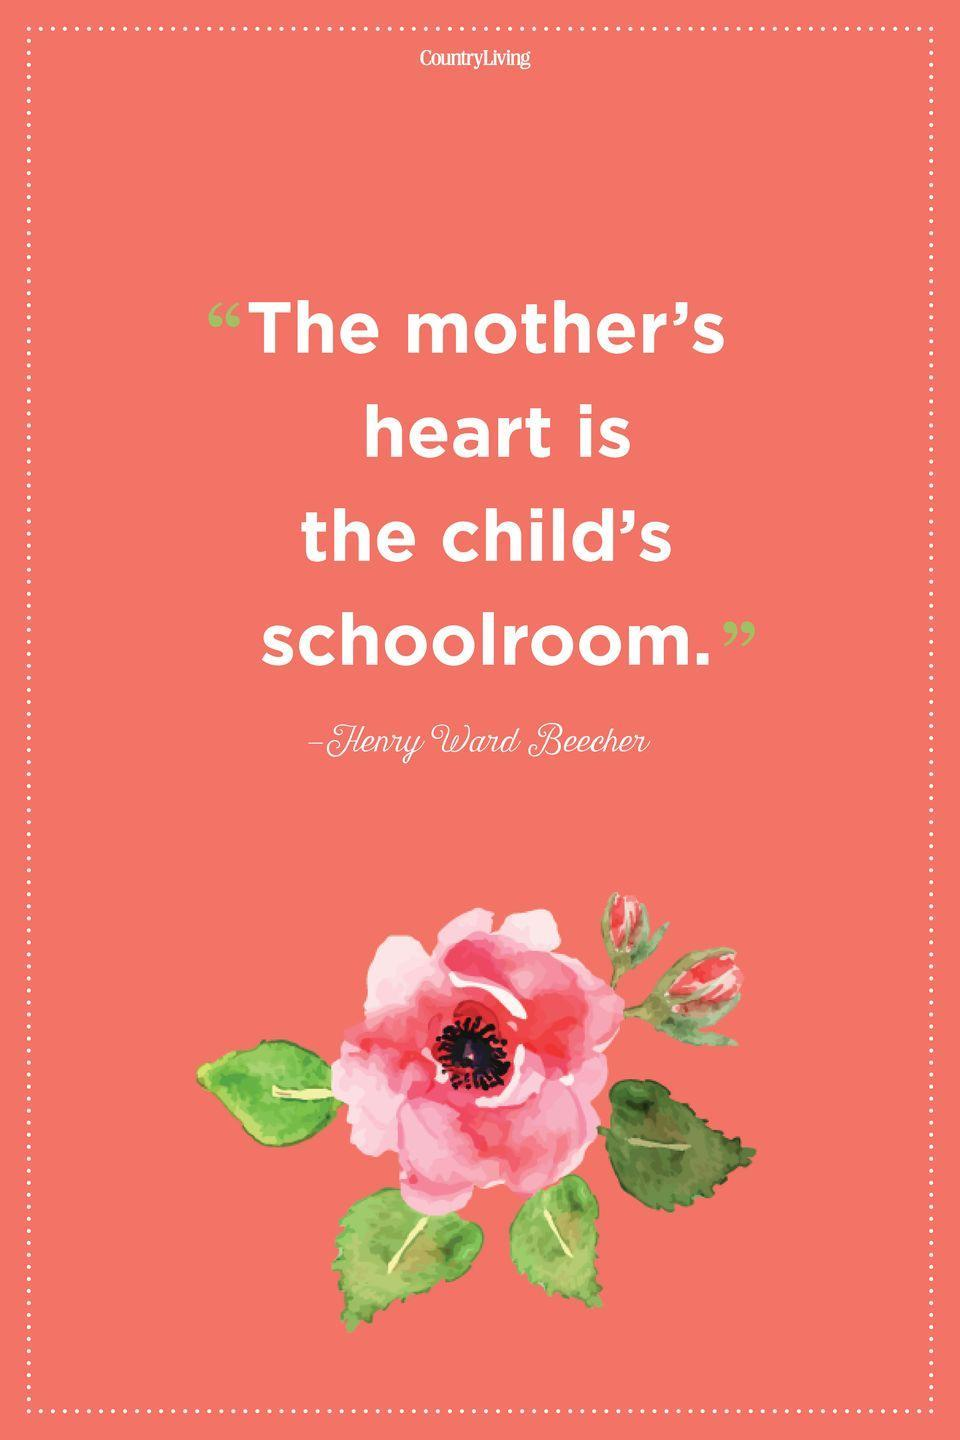 "<p>""The mother's heart is the child's schoolroom.""</p>"